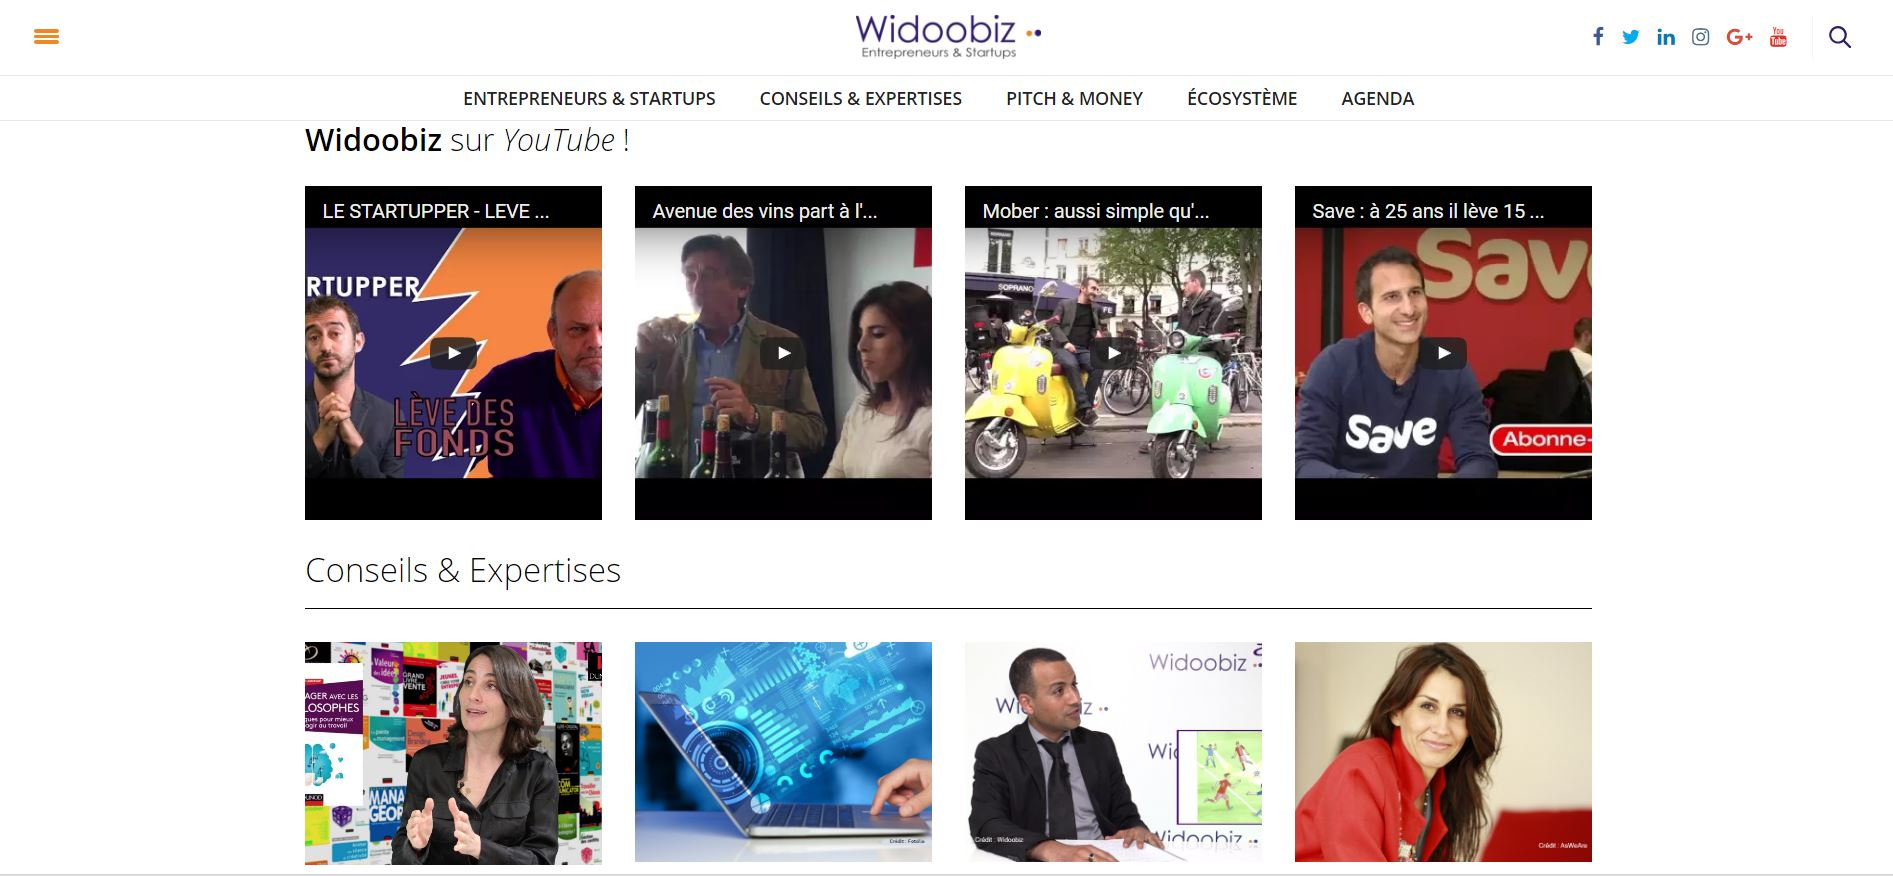 widoobiz-youtube